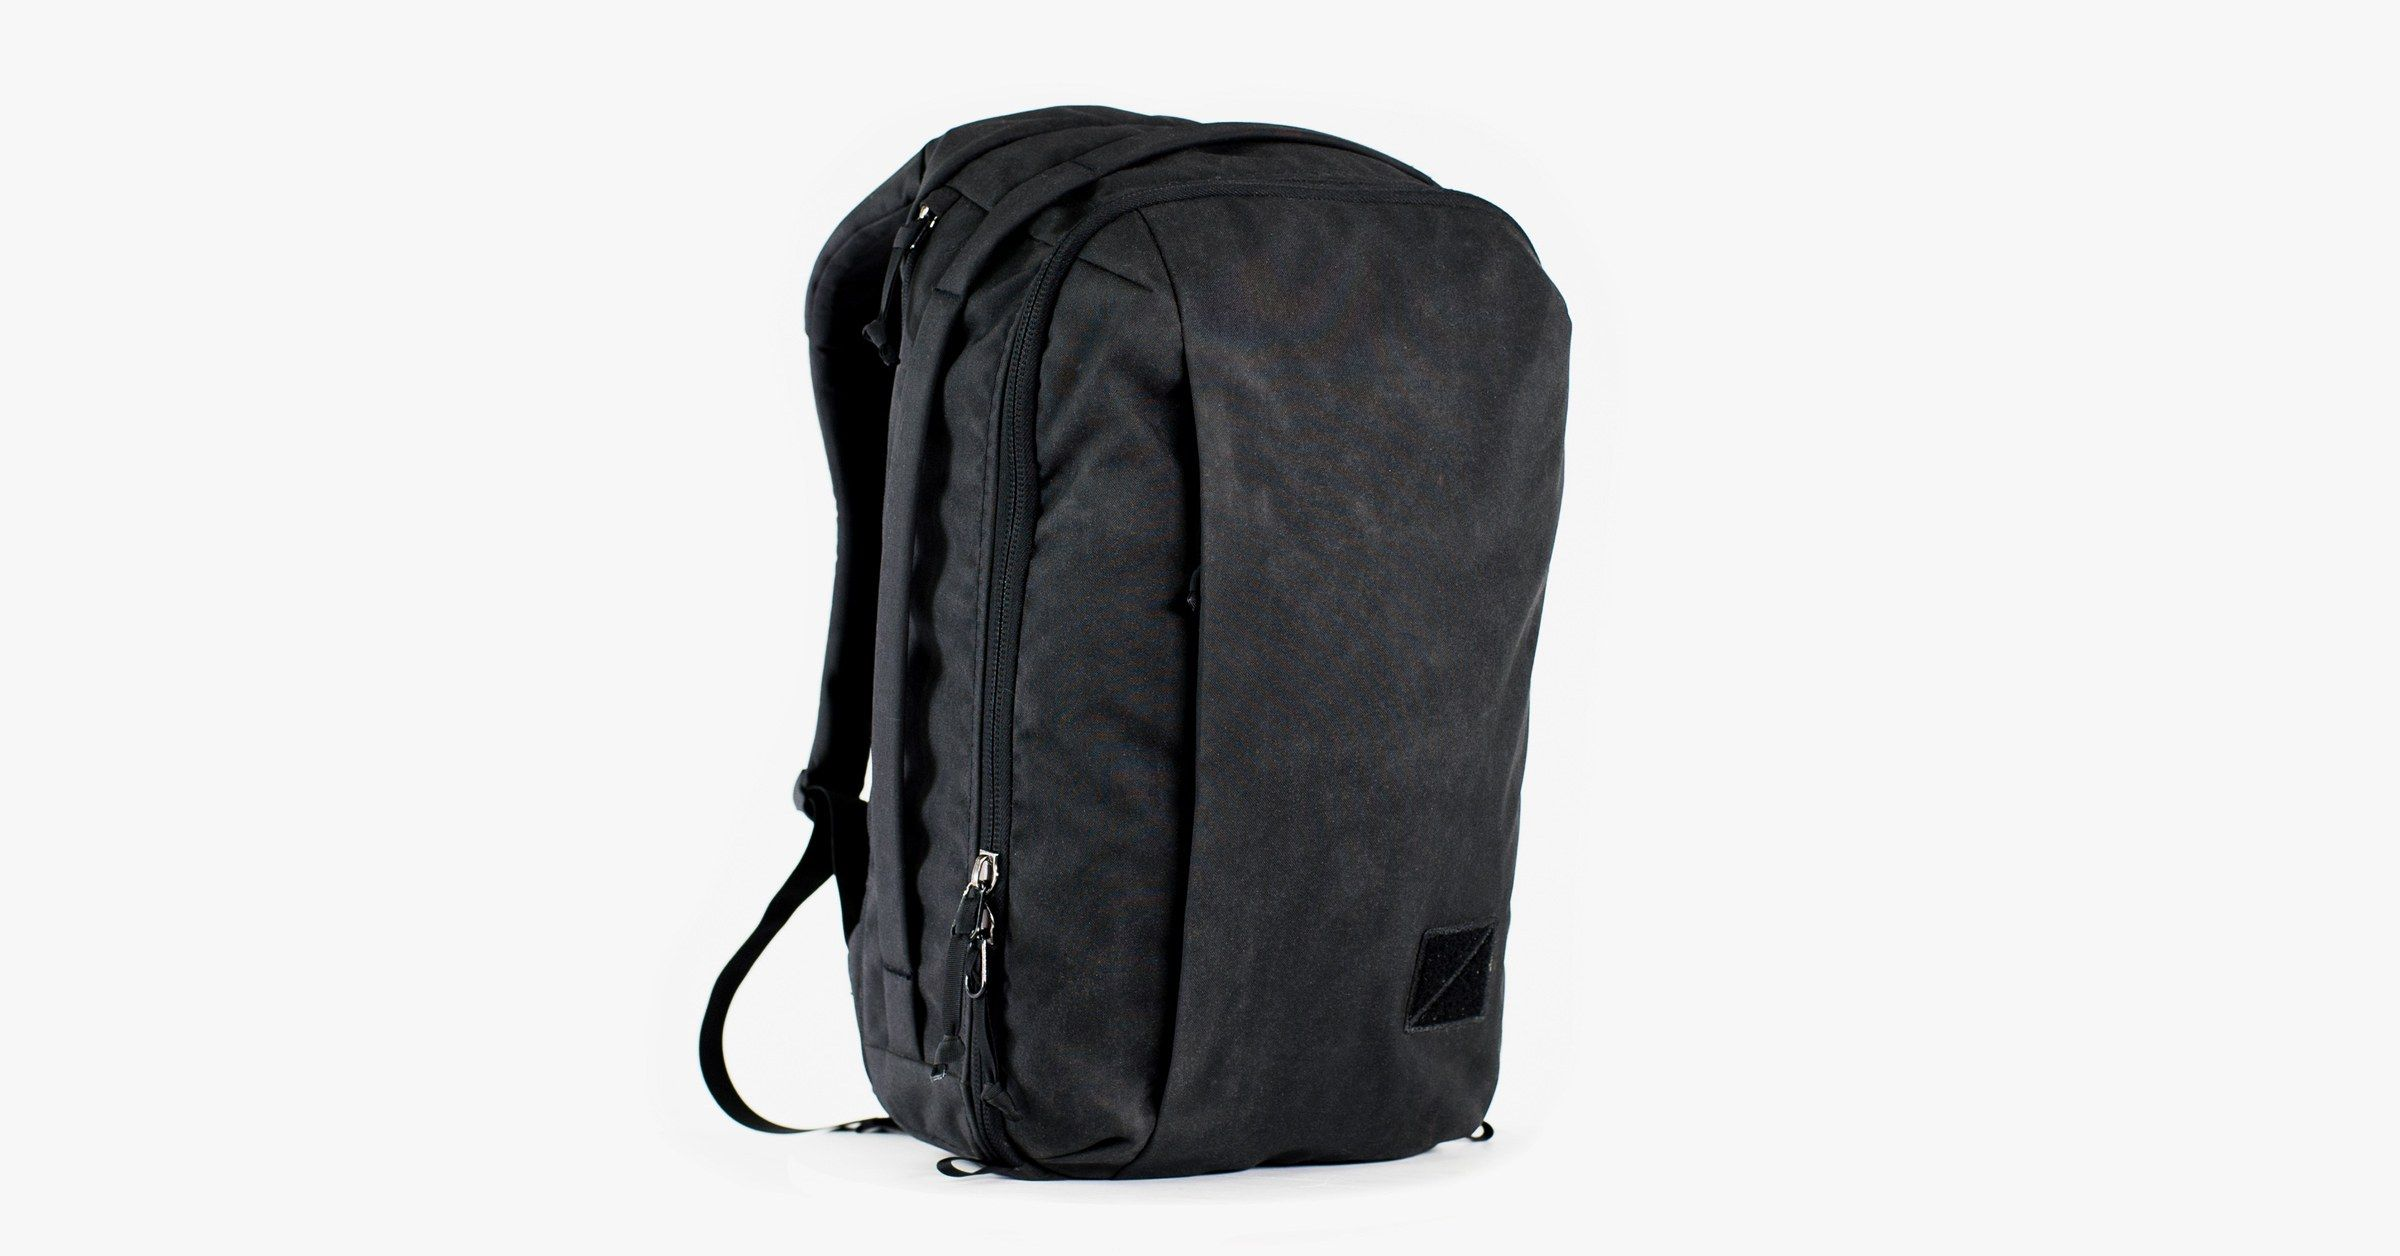 a09a15379e22 The Best Backpacks for Every Workplace   Gear   Best laptop backpack ...